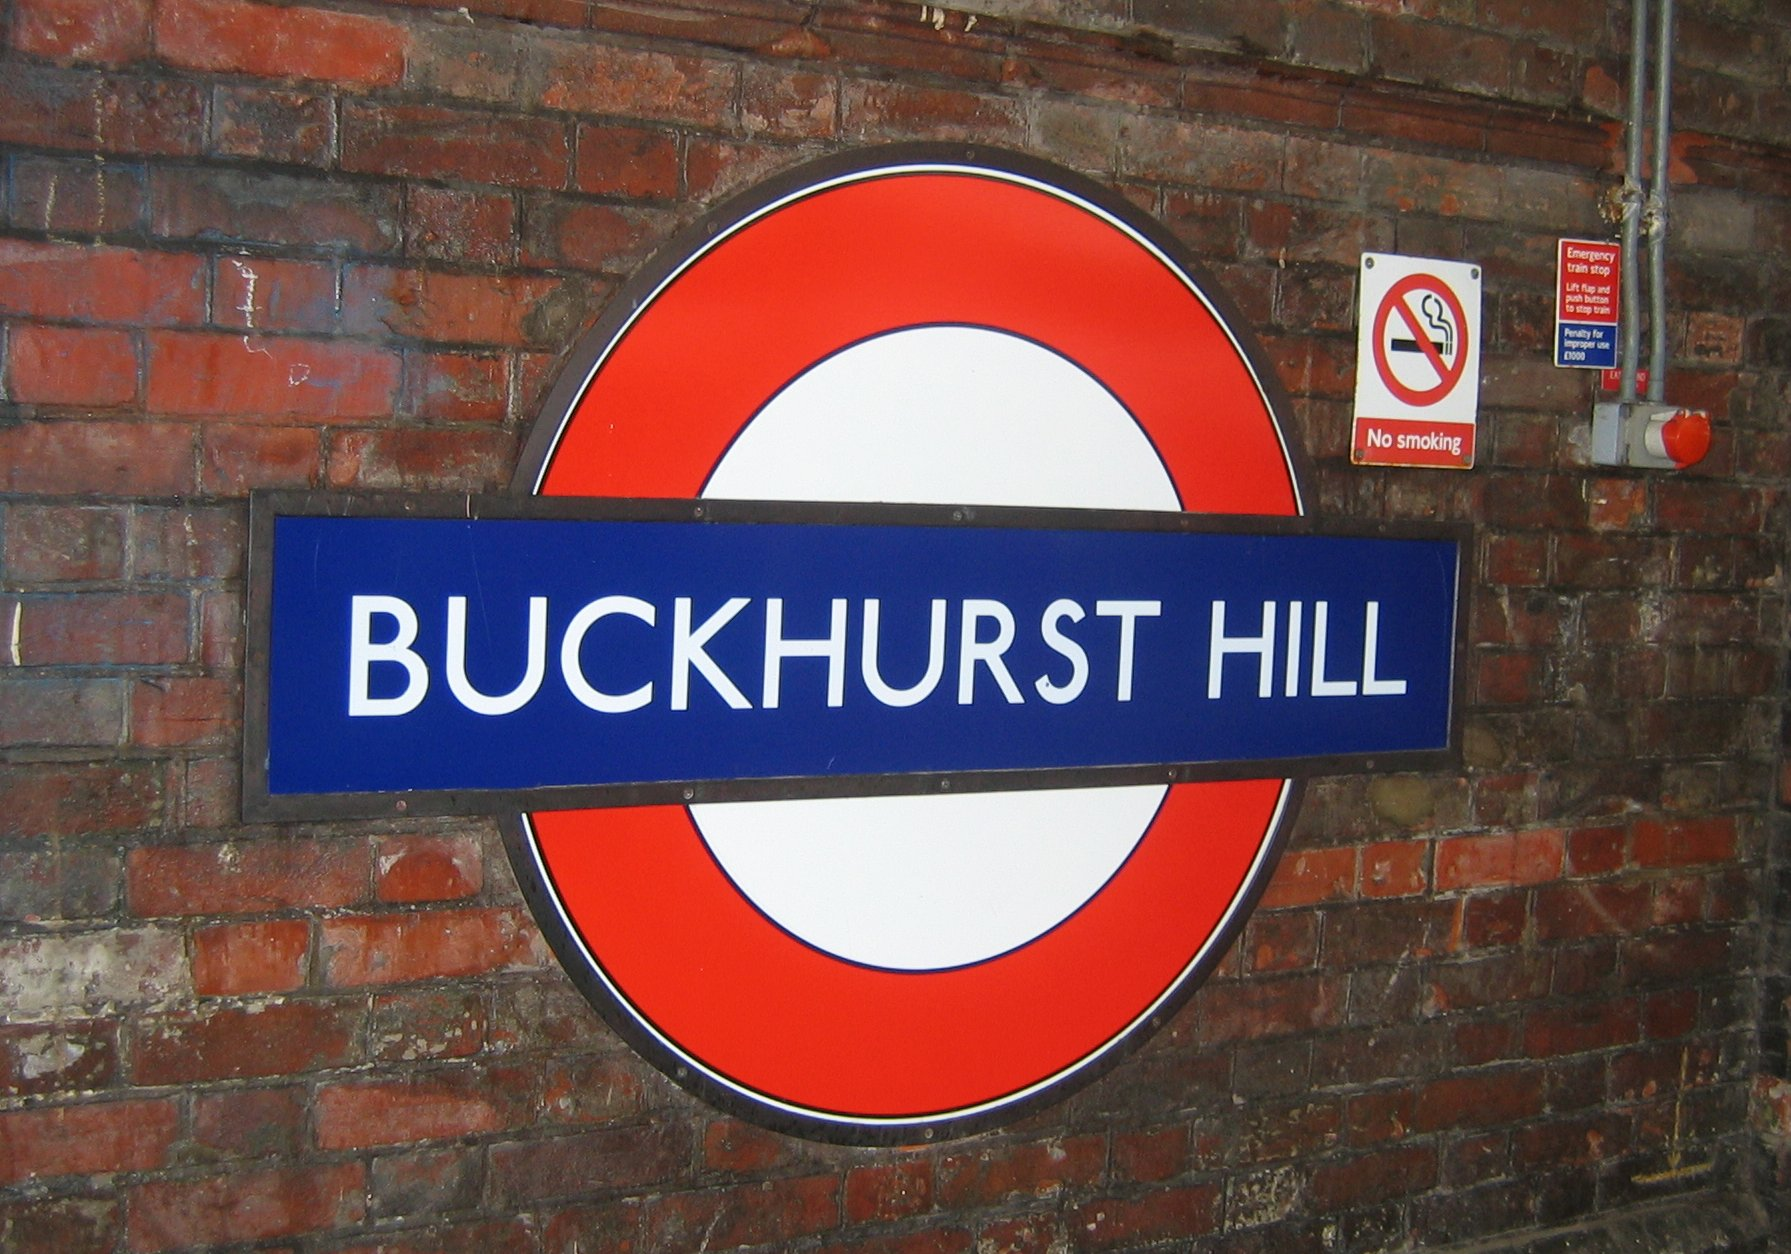 Buckhurst_hill_tube_sign